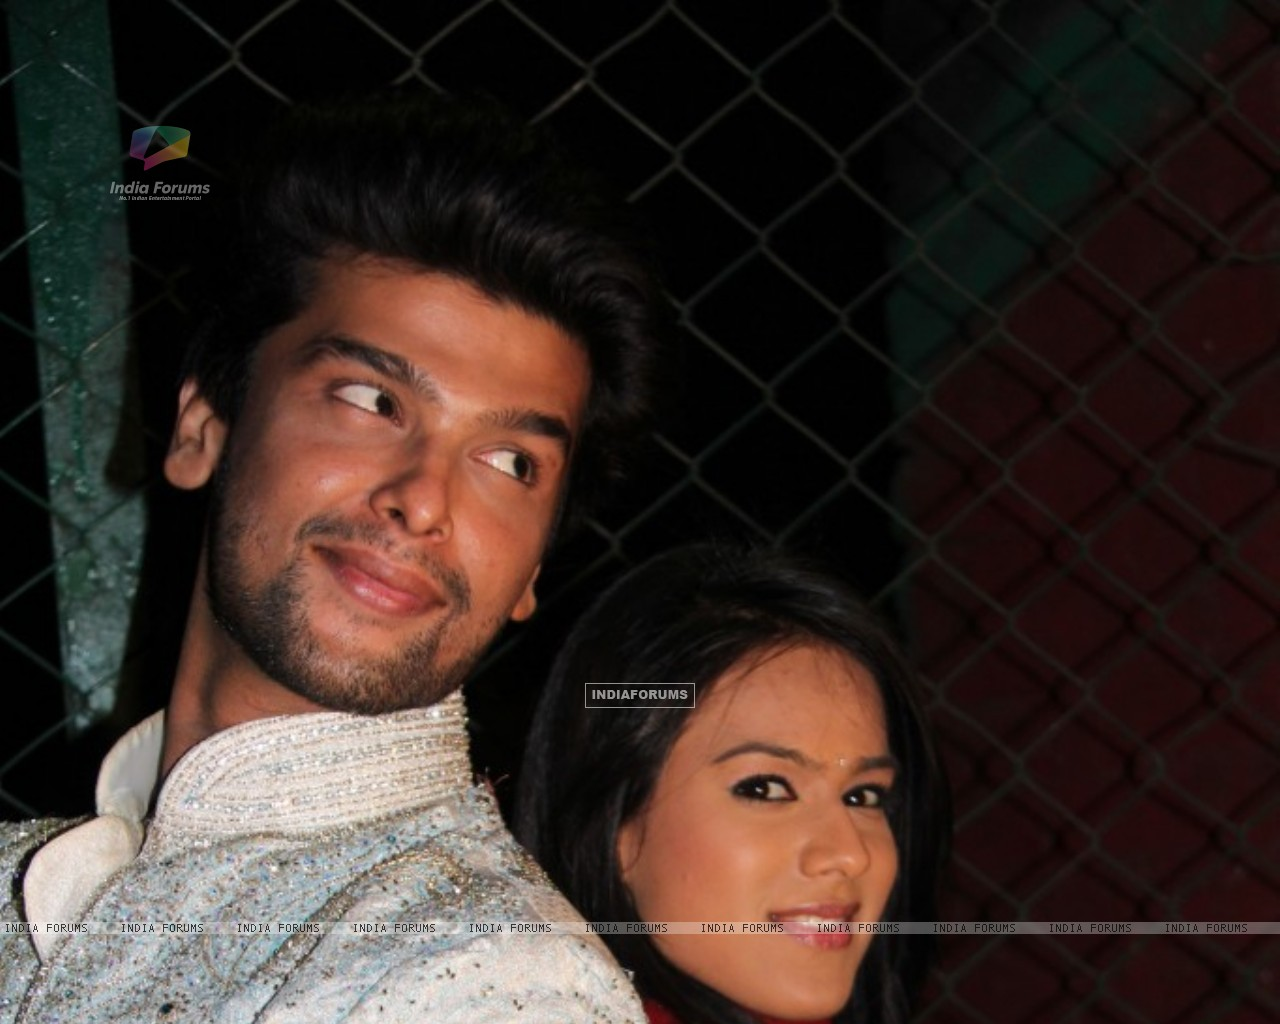 Still of Nia Sharma and Kushal tandon as Manvi and virat from Ek Hazaaron Mein Meri Behna Hain (200958) size:1280x1024